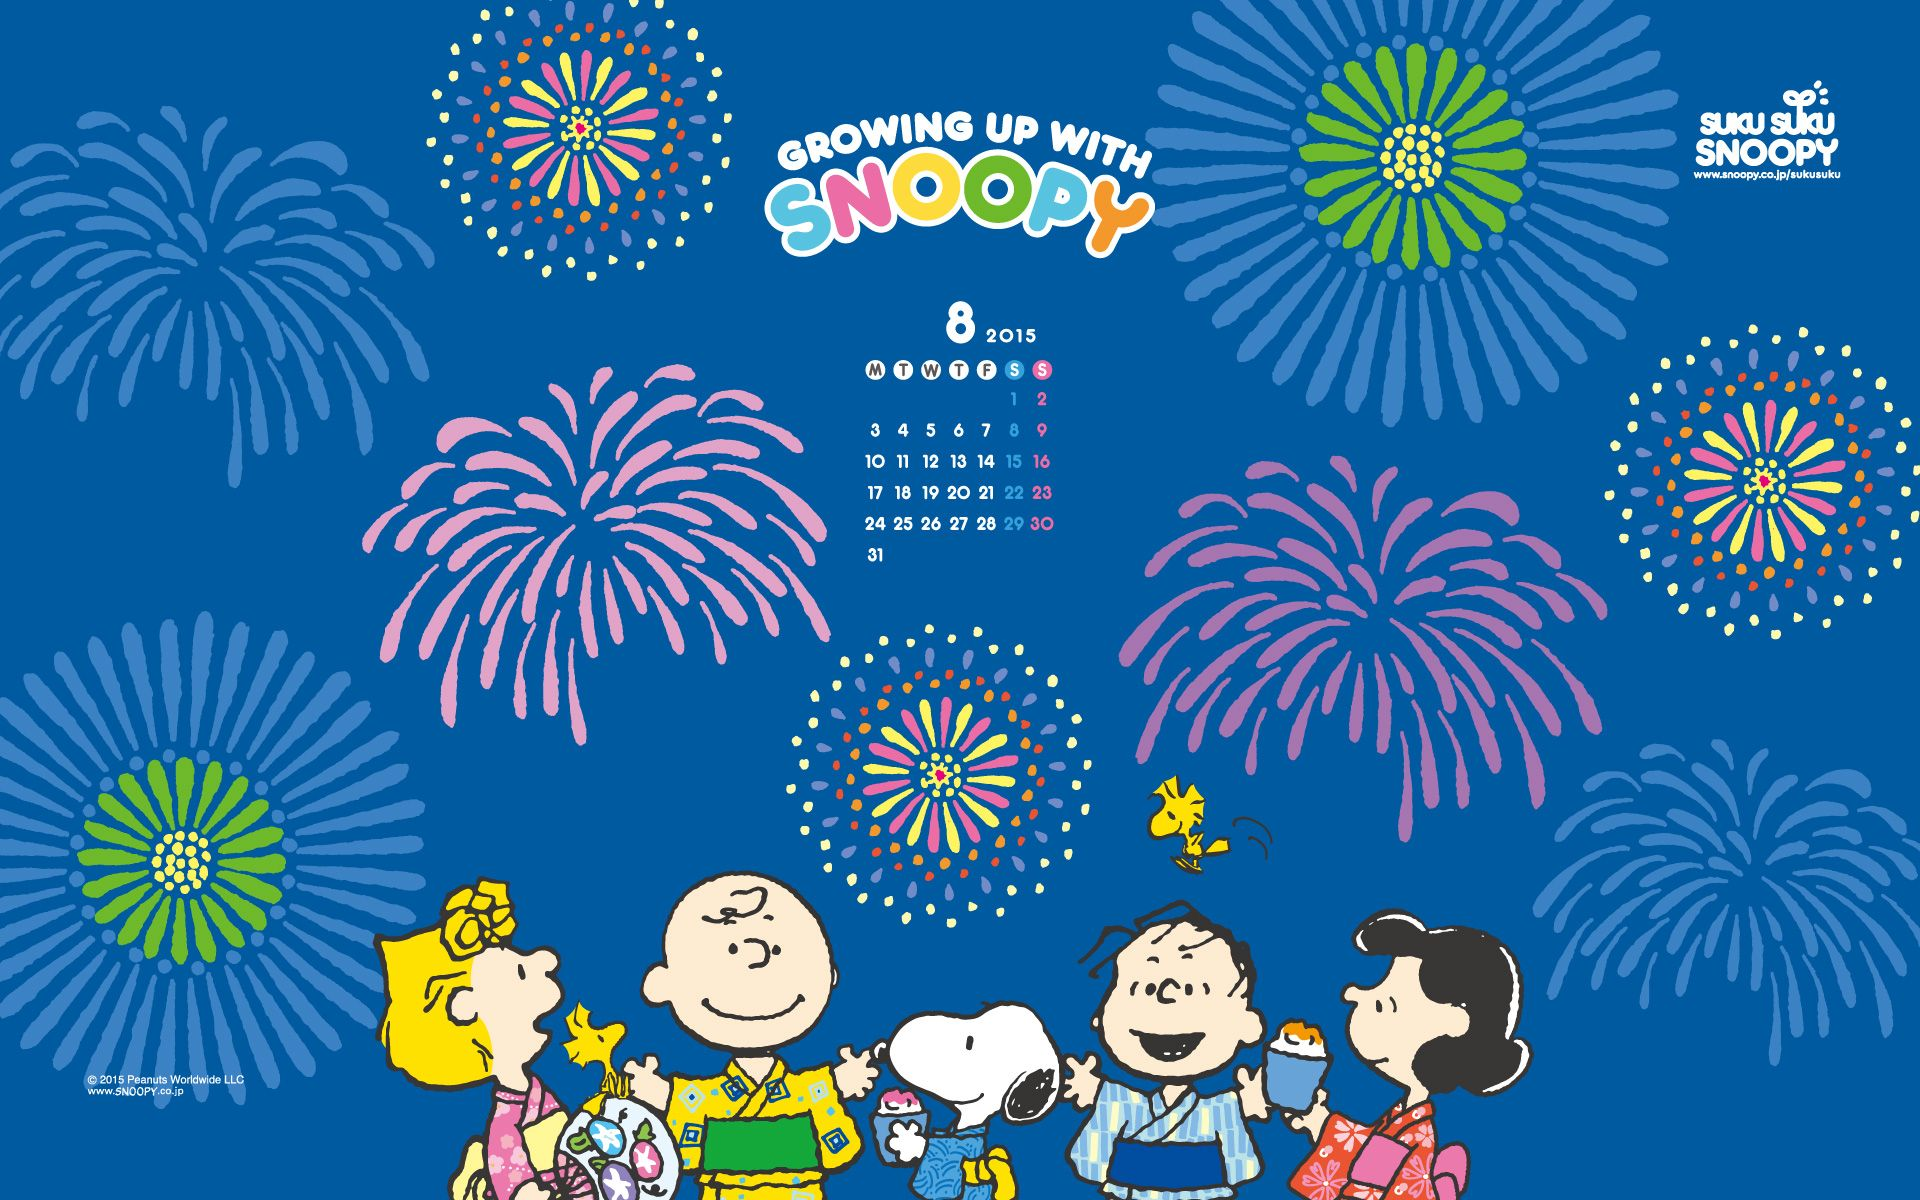 http//www.snoopy.co.jp/sukusuku/images/wallpaper/1508